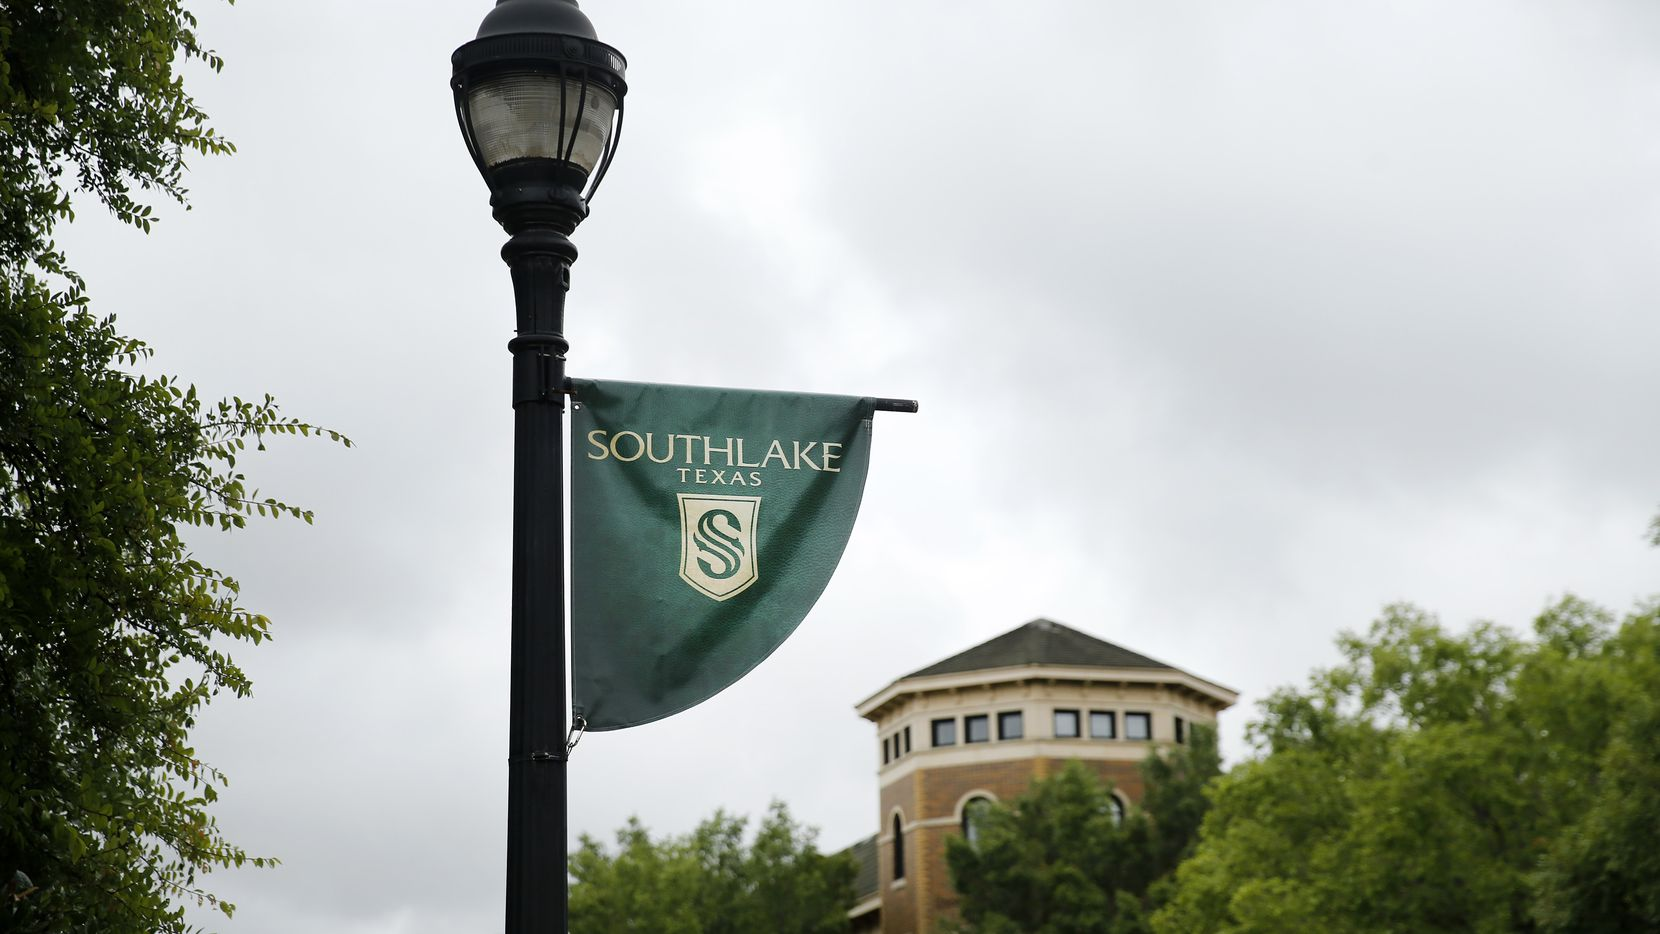 Southlake Town Square in Southlake, Texas Tuesday, June 23, 2020.